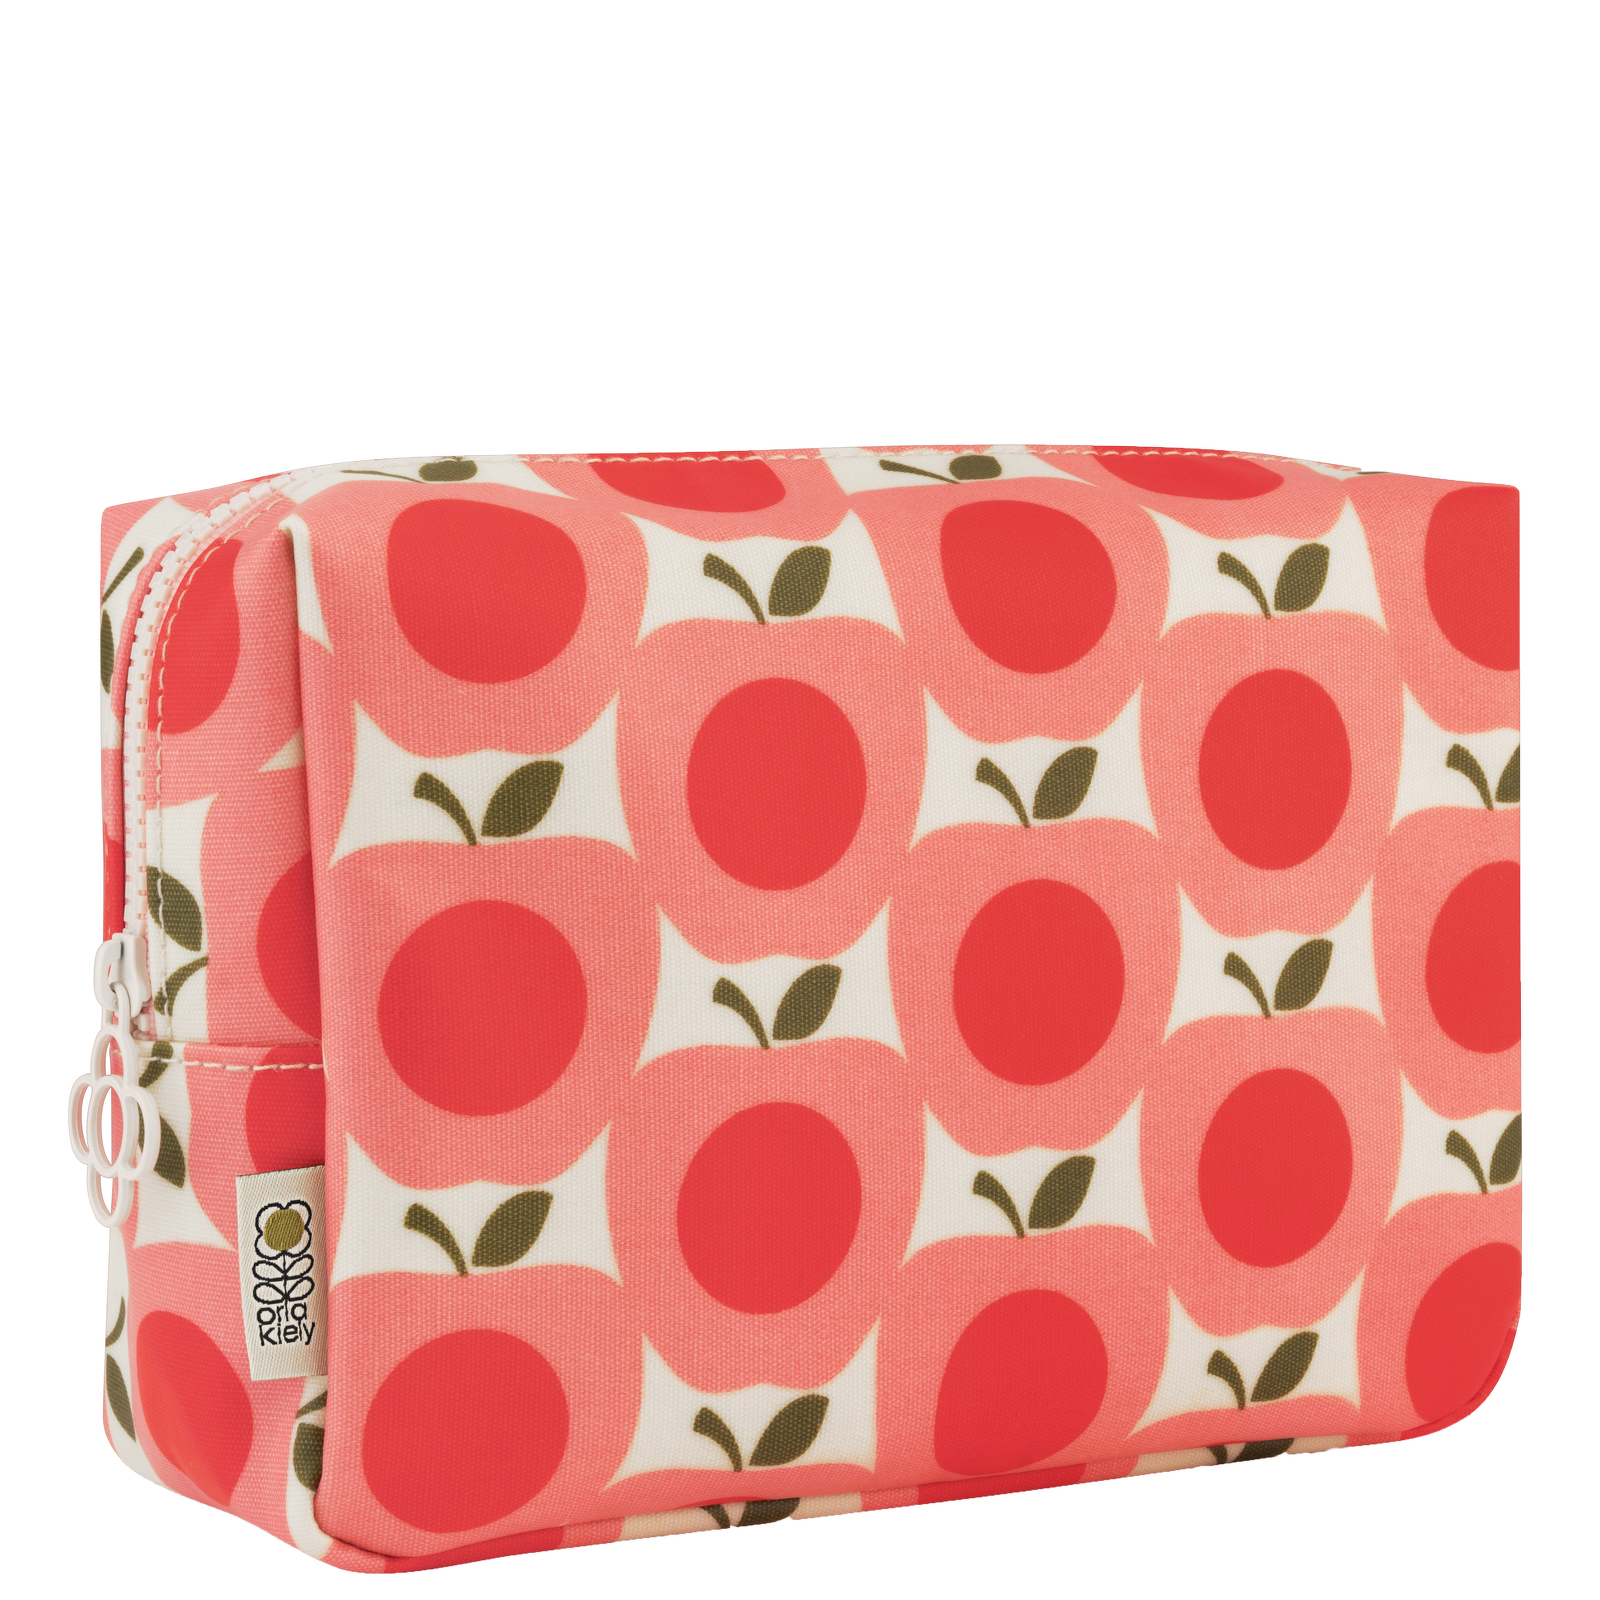 Orla Kiely Gifts & Sets  Apple Wash Bag